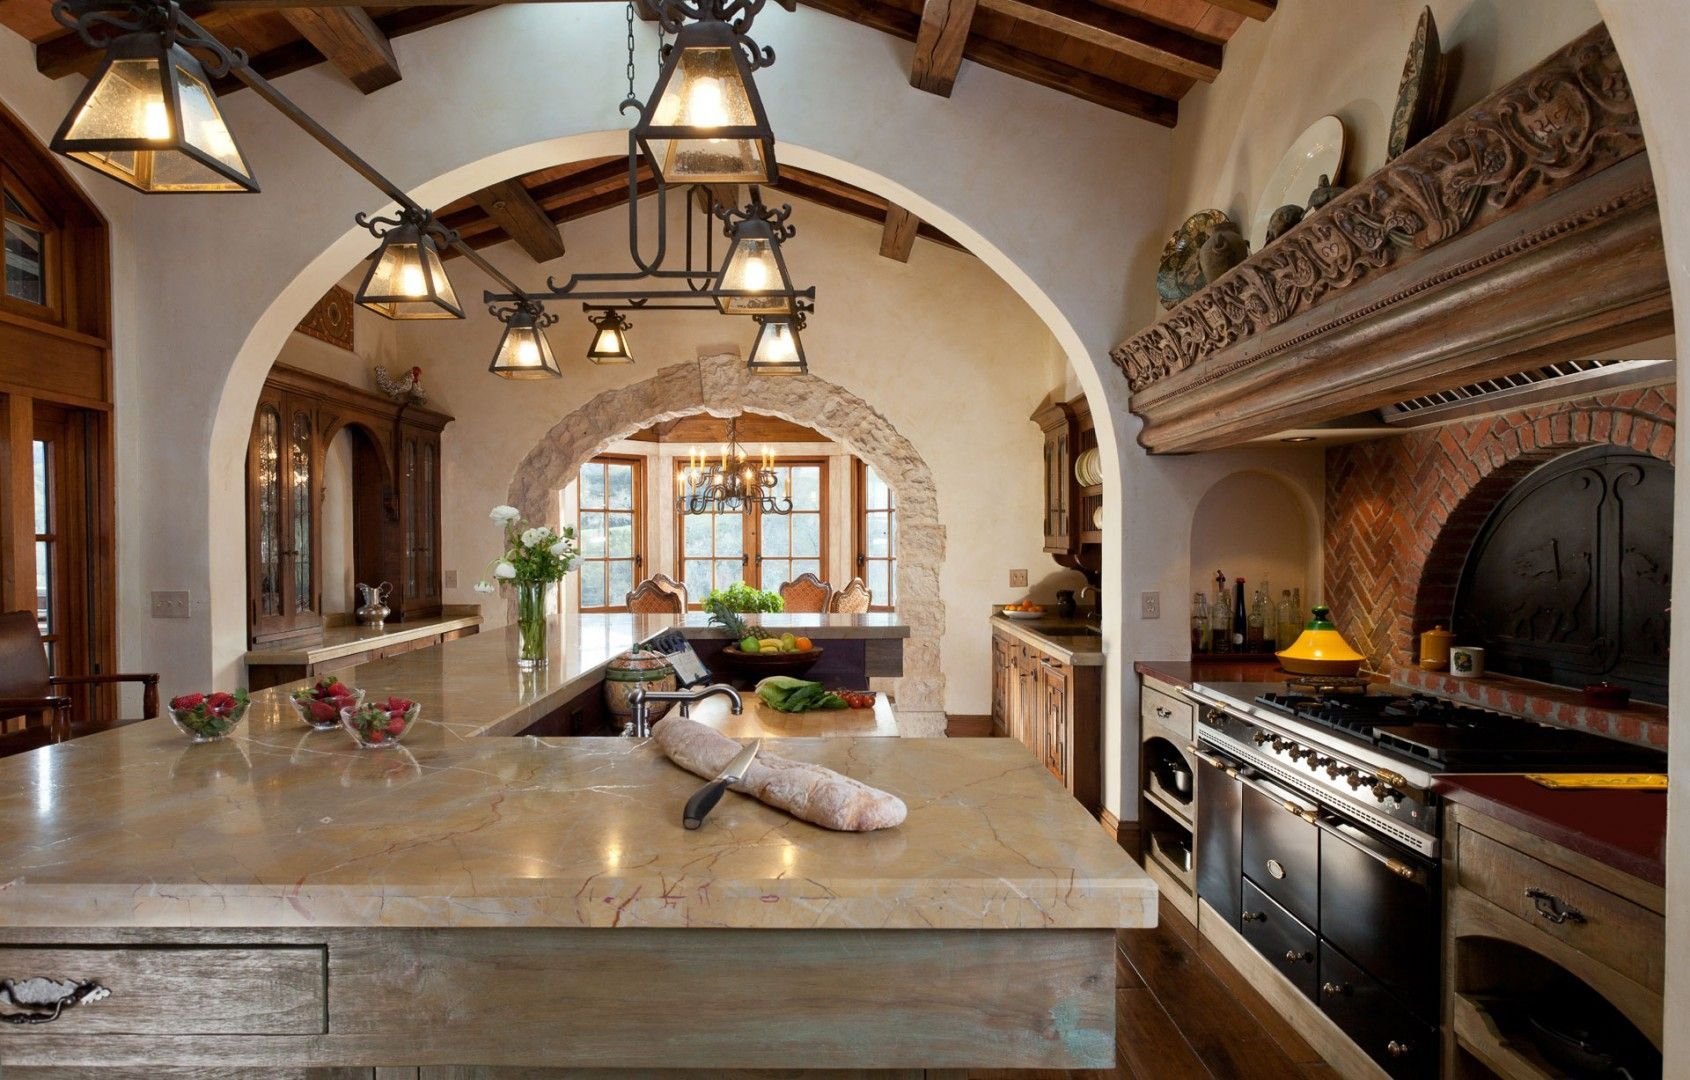 Spanish Colonial Kitchens A Little Dark But Love The Light Fixtures The Counter And The